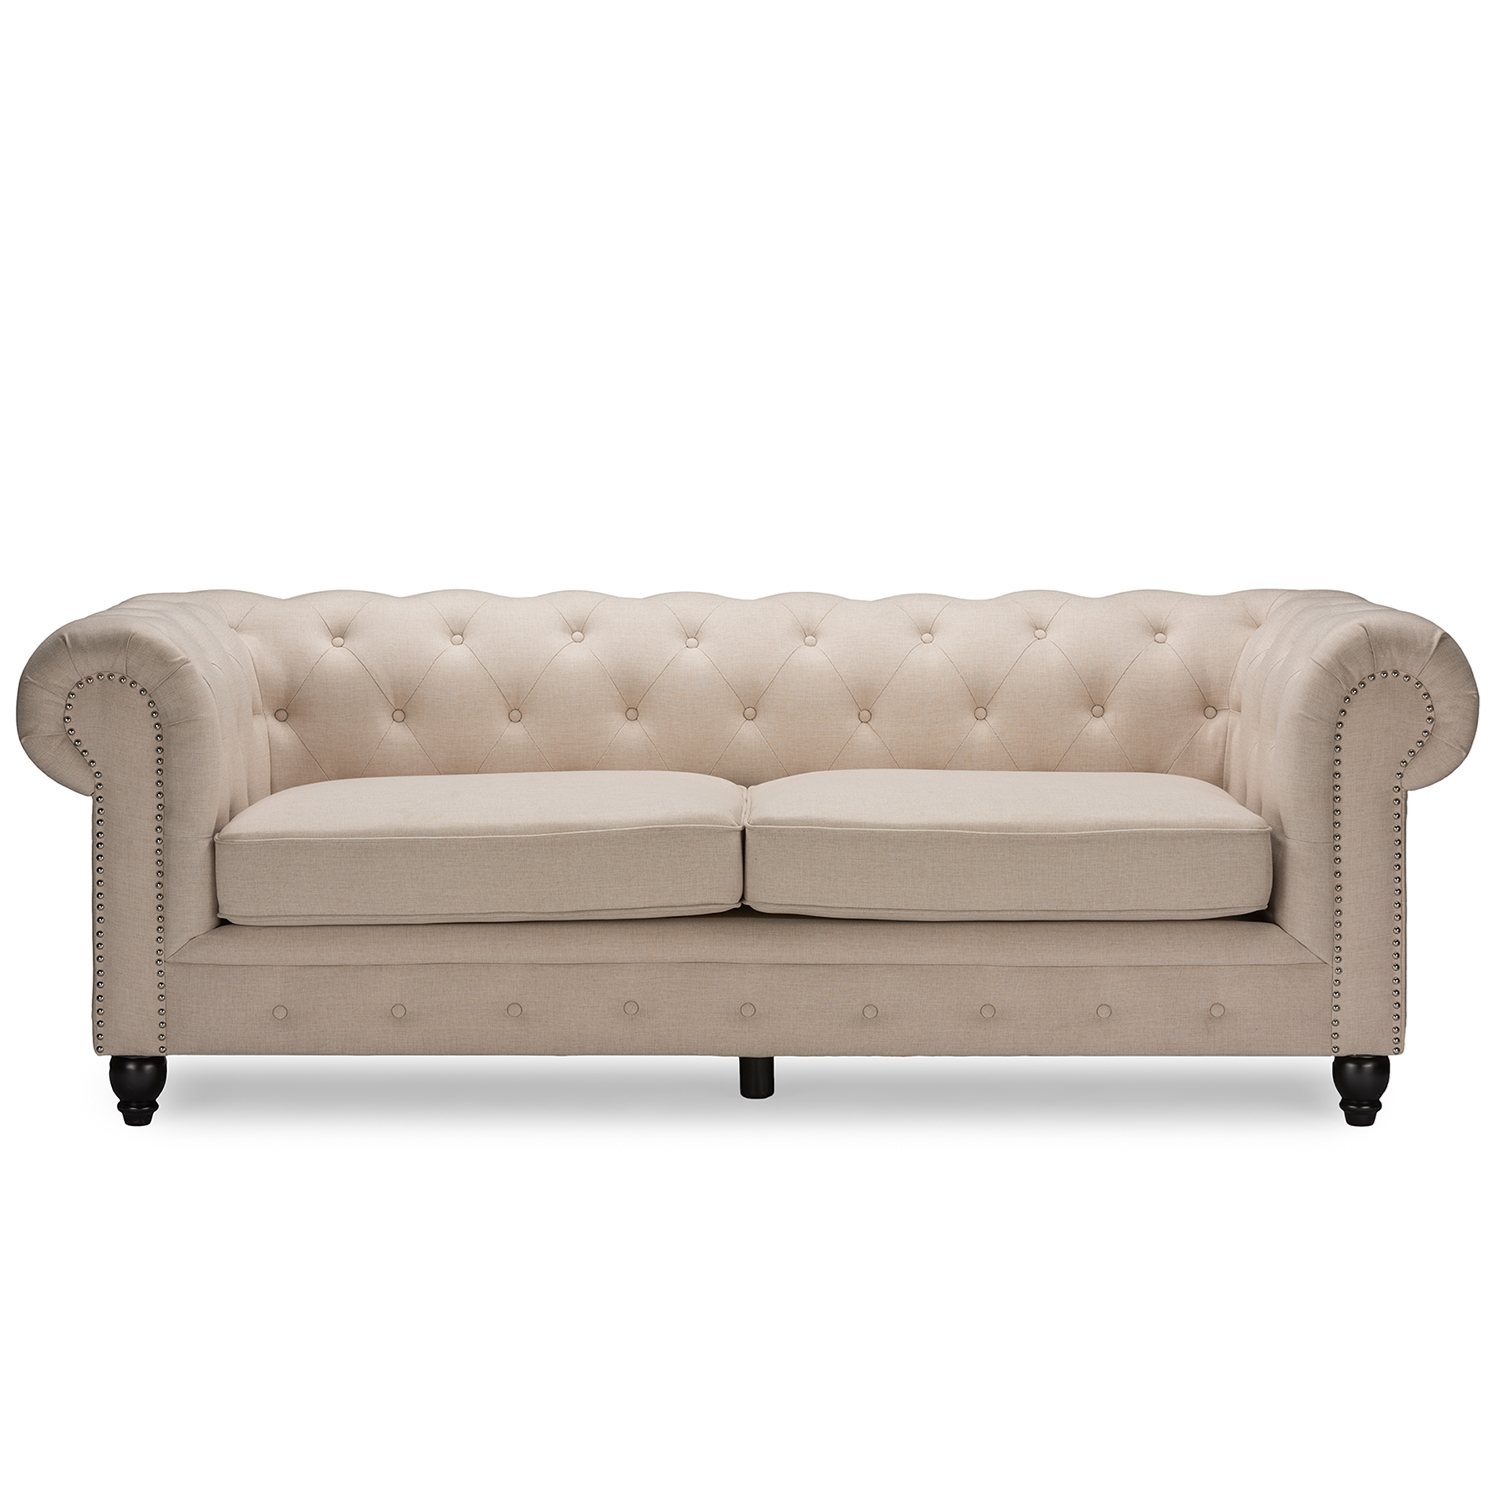 Baxton Studio Cassandra Modern Classic Rolled Arm Beige Linen Upholstered  Chesterfield 3 Seater Sofa